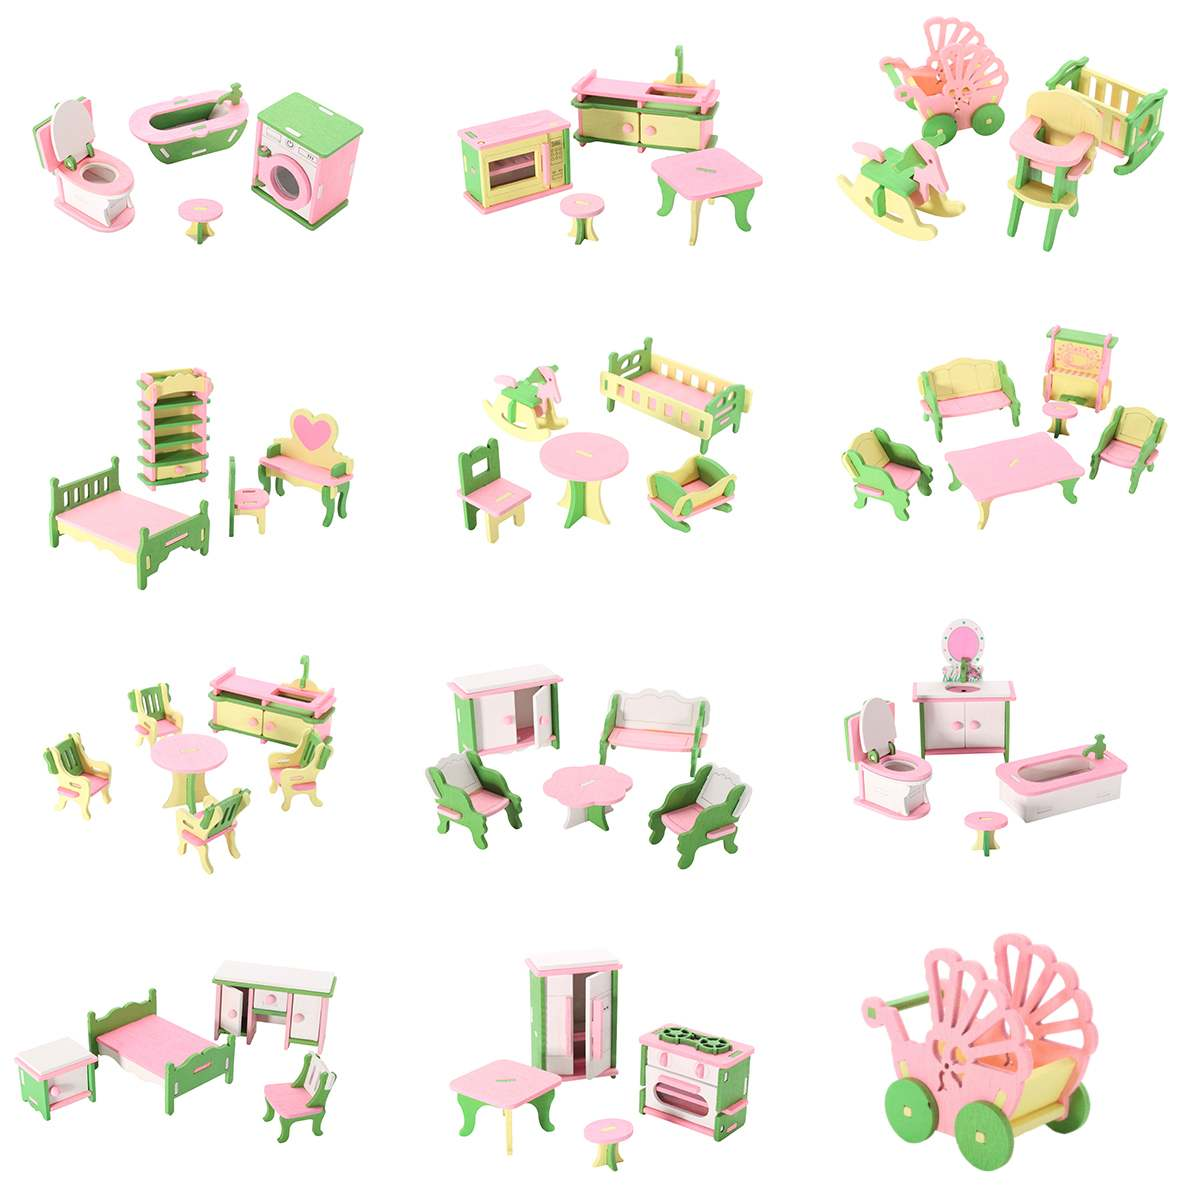 3D Dolls House Set Miniature House Kids Child Pretend Play Toys Building Blocks Edutation Toys Sets Baby Wooden Dolls Furniture(China)